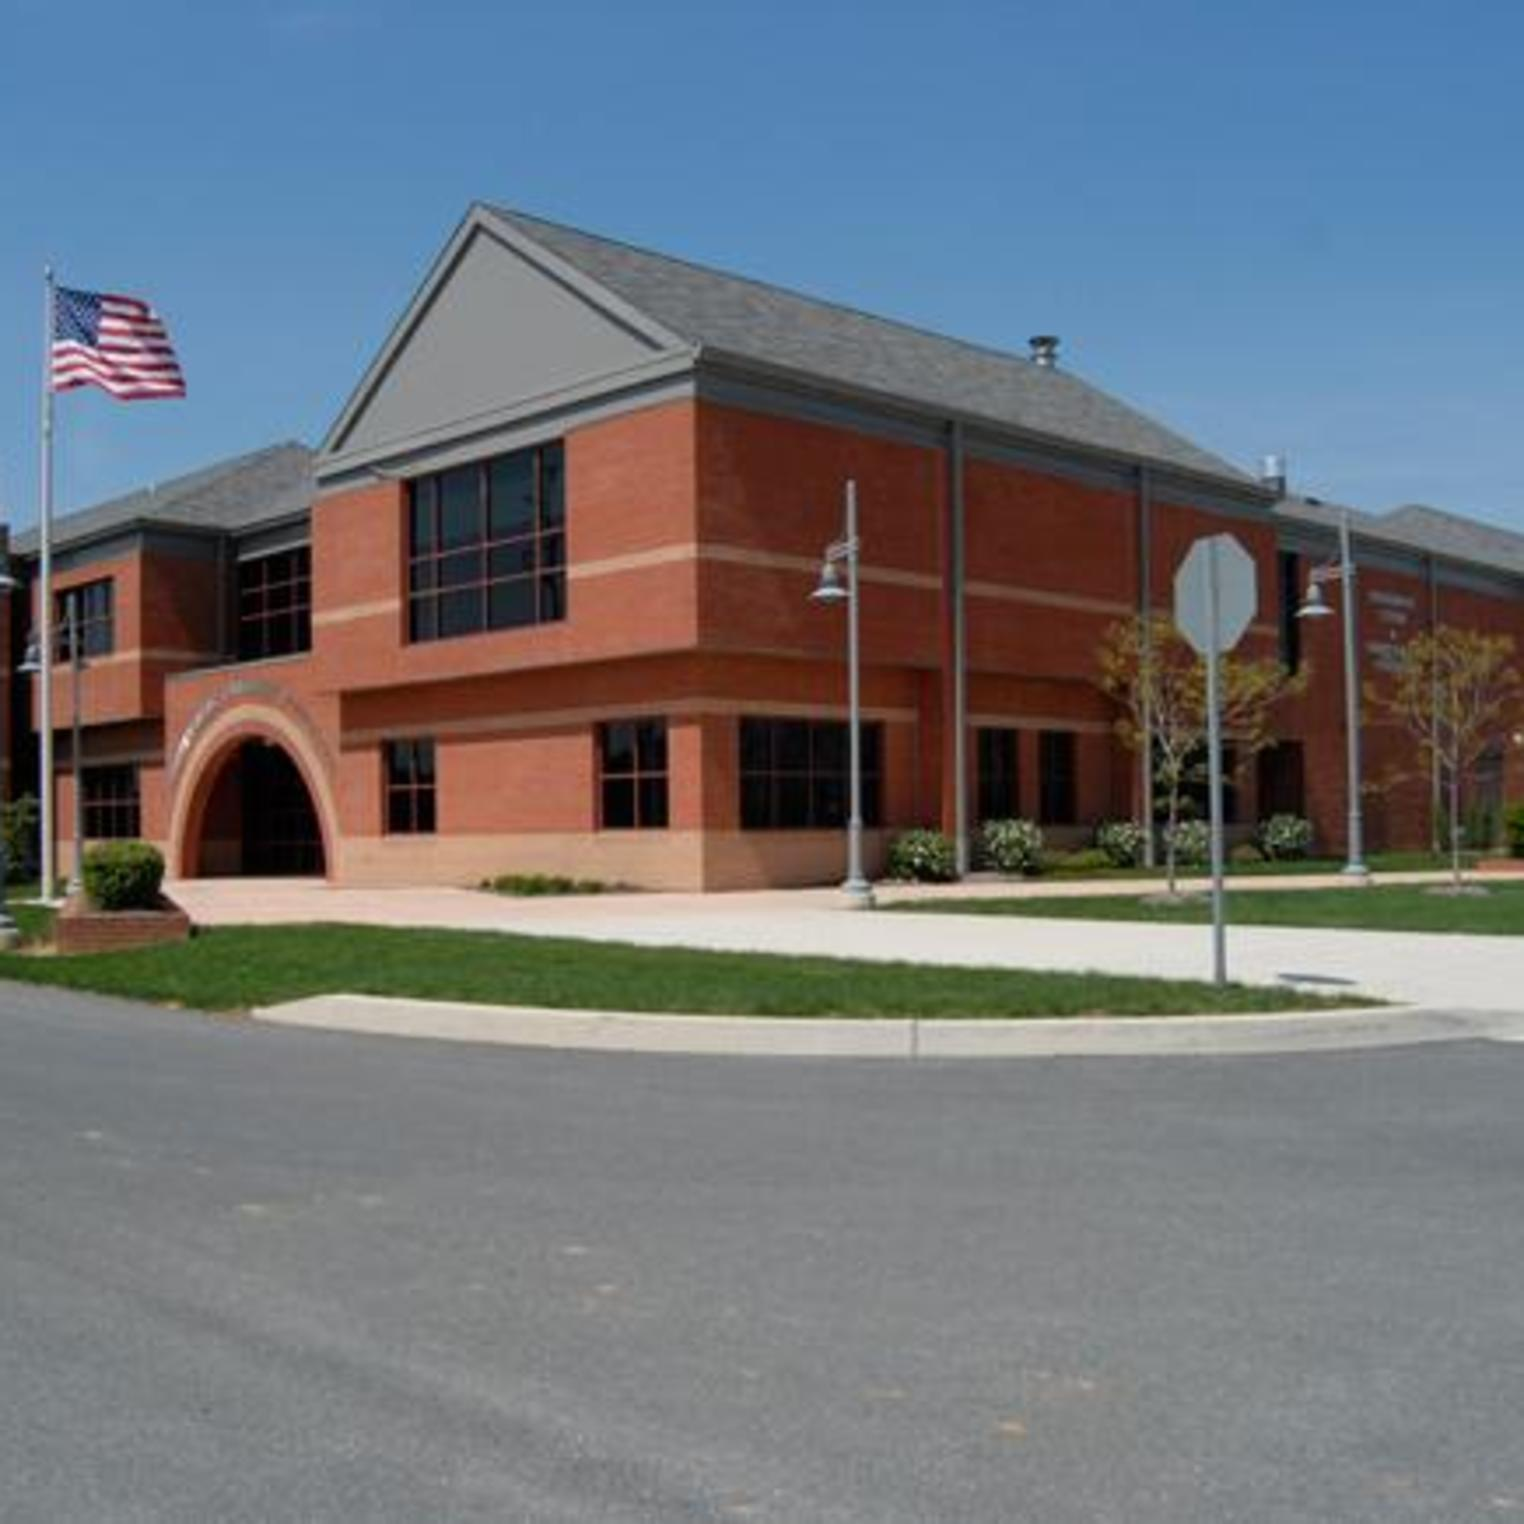 Exterior View of the Conference Center at Shippensburg University